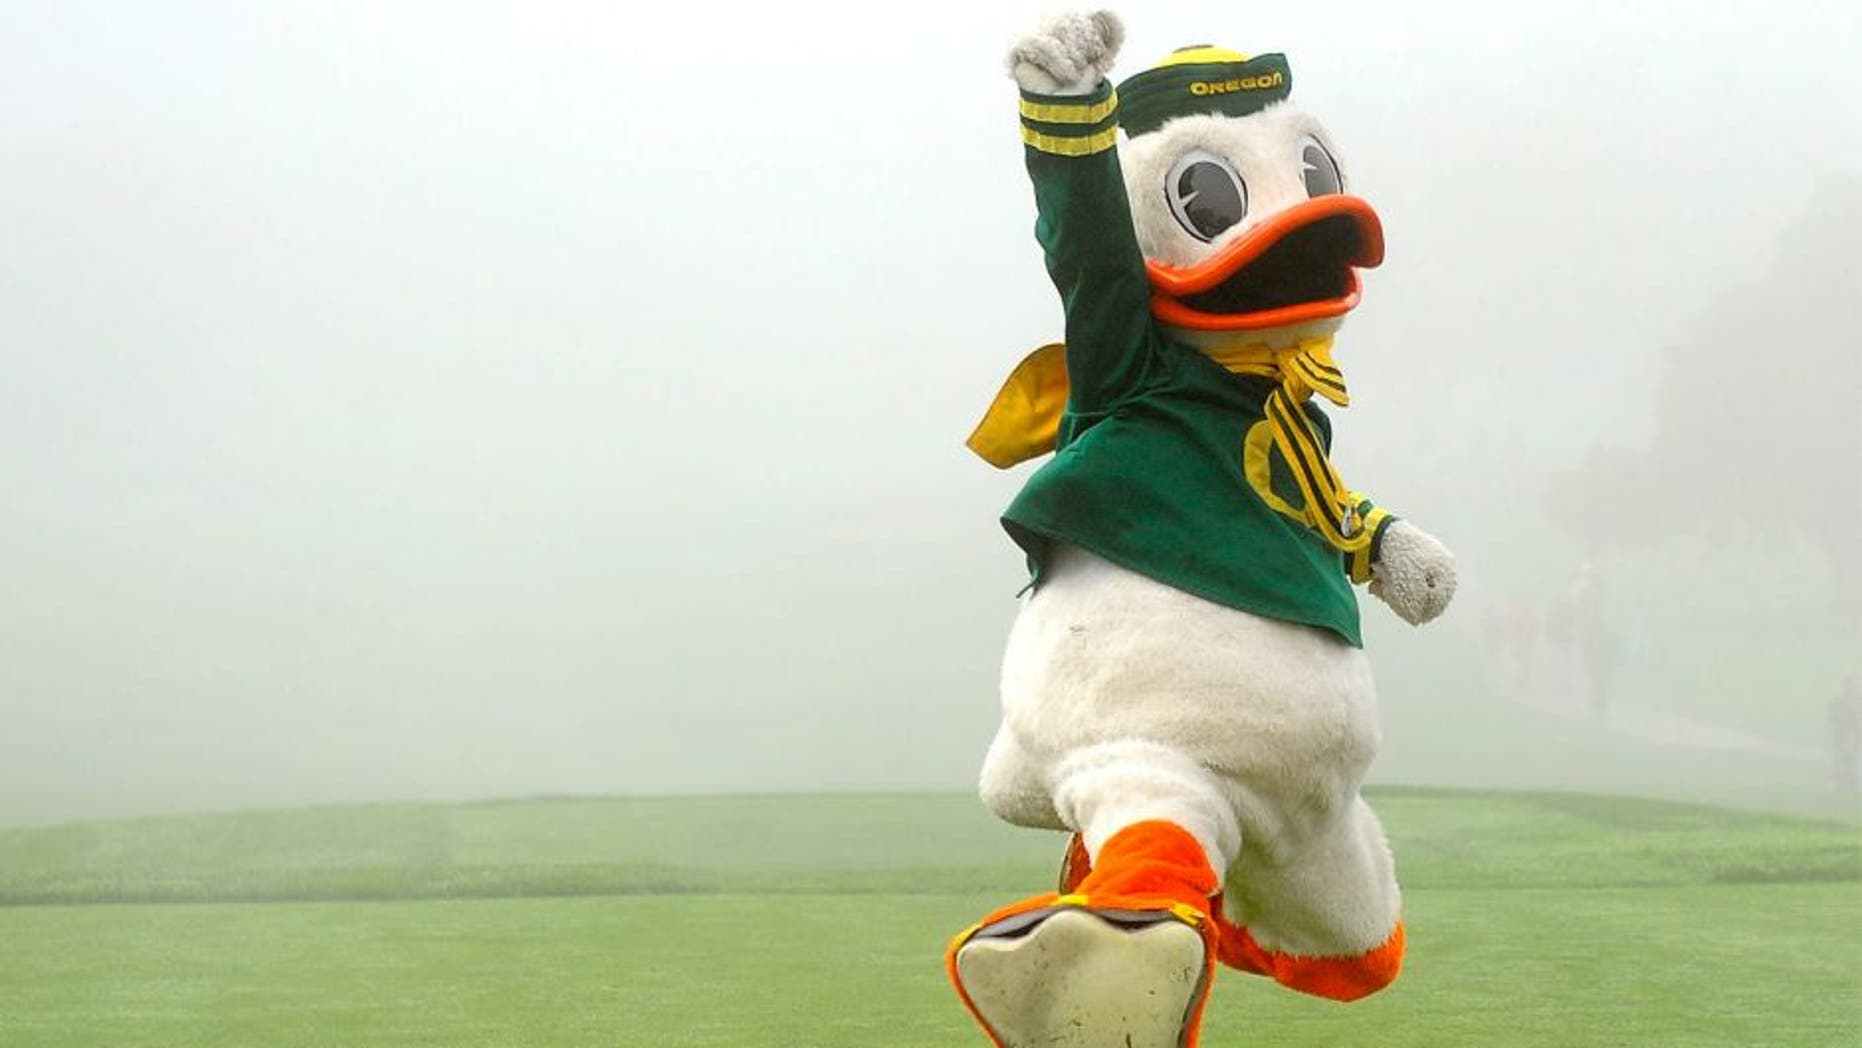 January 26, 2013; La Jolla, CA, USA; The Oregon Ducks mascot celebrates after winning a dance competition during a fog delay before the start of the third round of the Farmers Insurance Open at Torrey Pines. Mandatory Credit: Photo By Christopher Hanewinckel-USA TODAY Sports